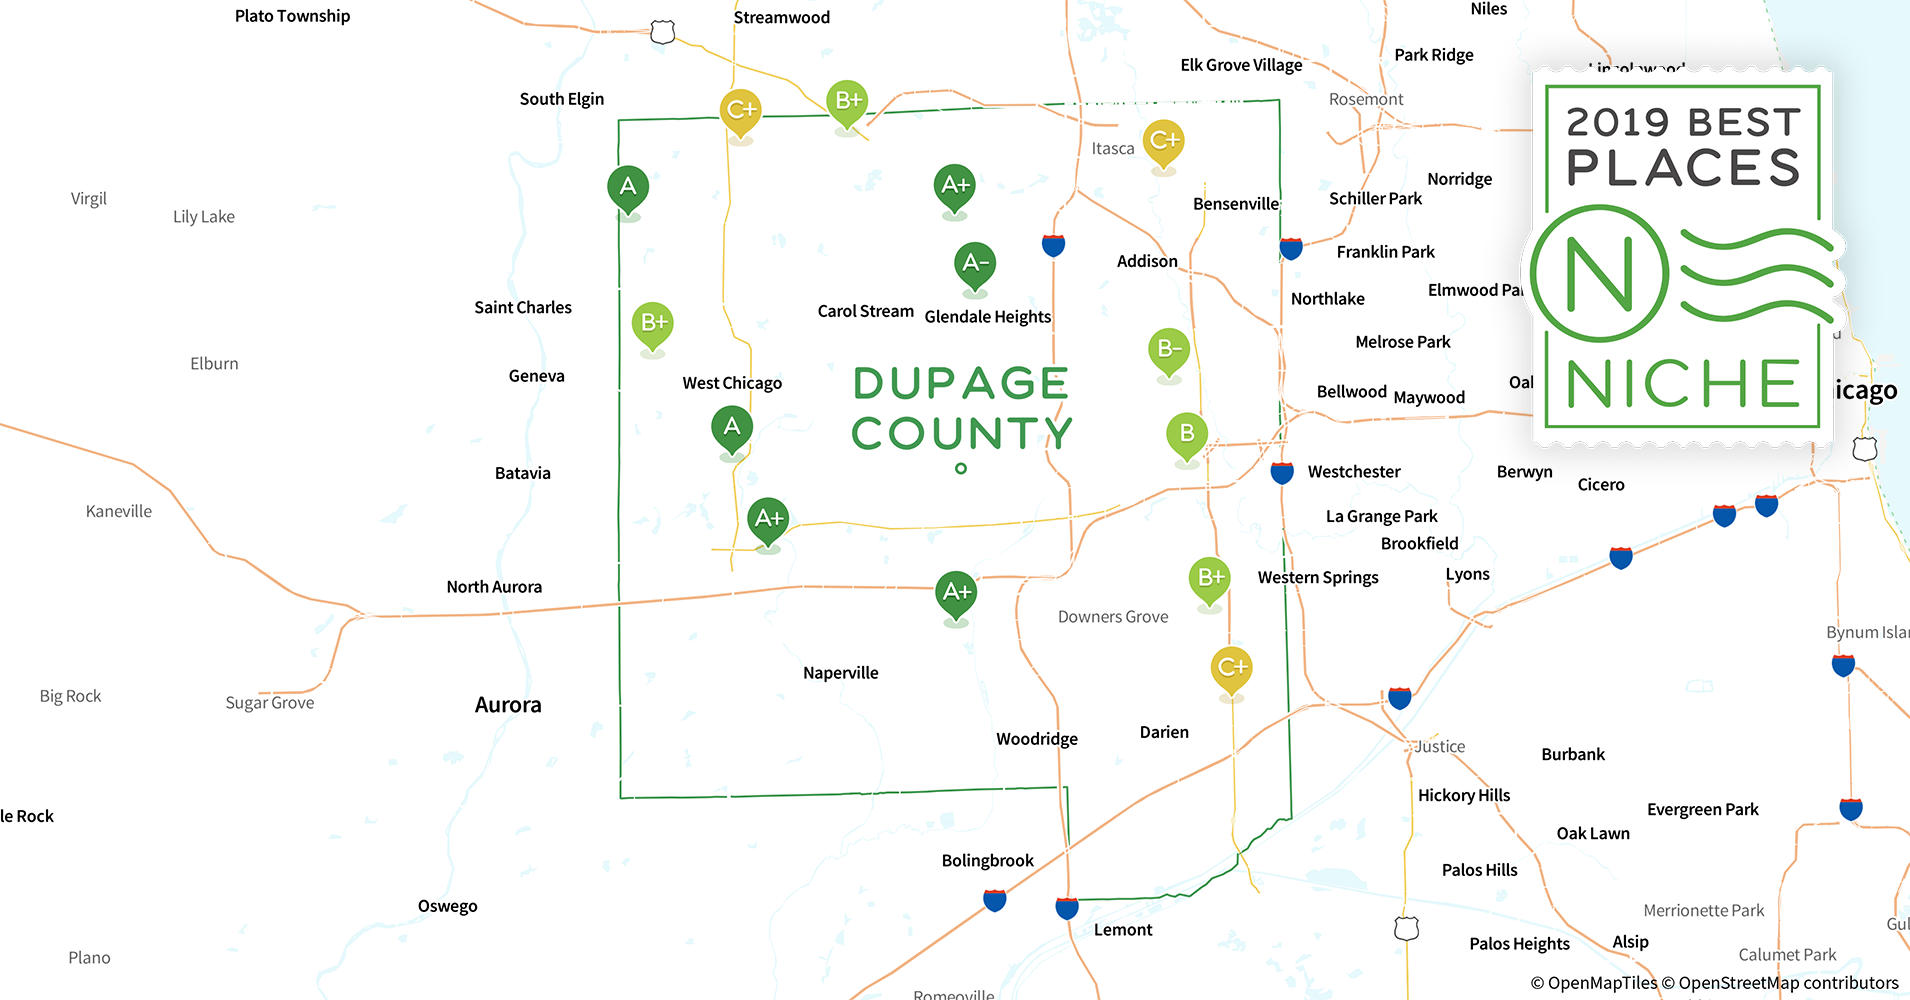 2019 Best Places to Buy a House in DuPage County, IL - Niche